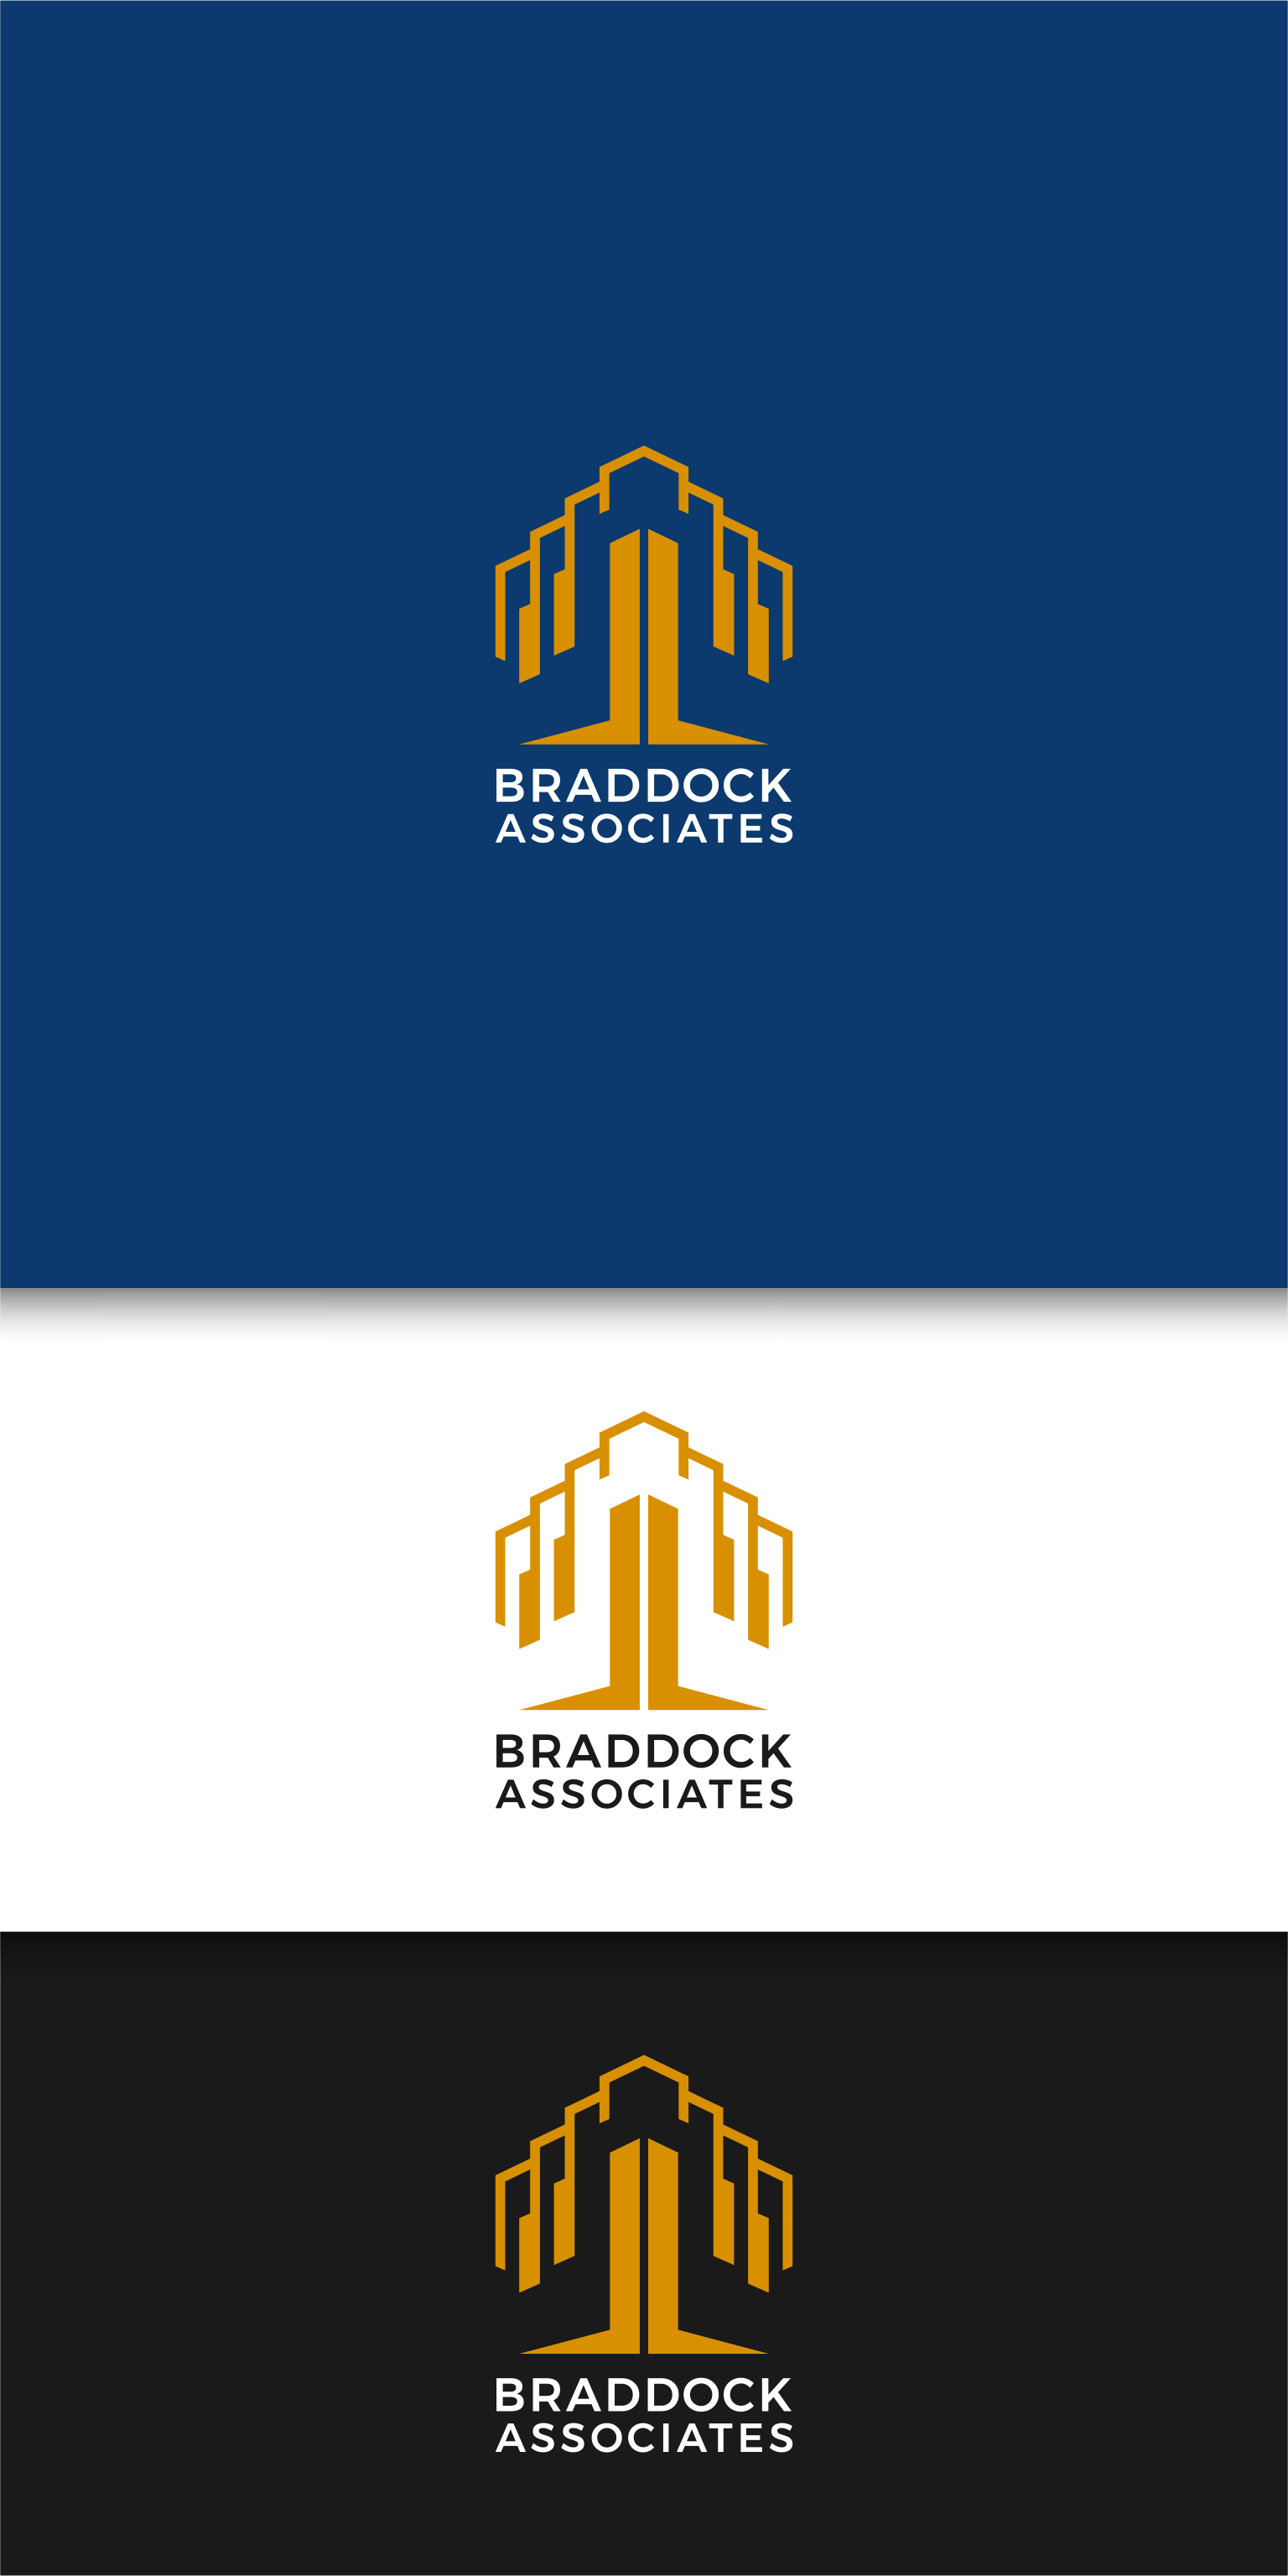 Commercial real estate company seeking design for new company logo